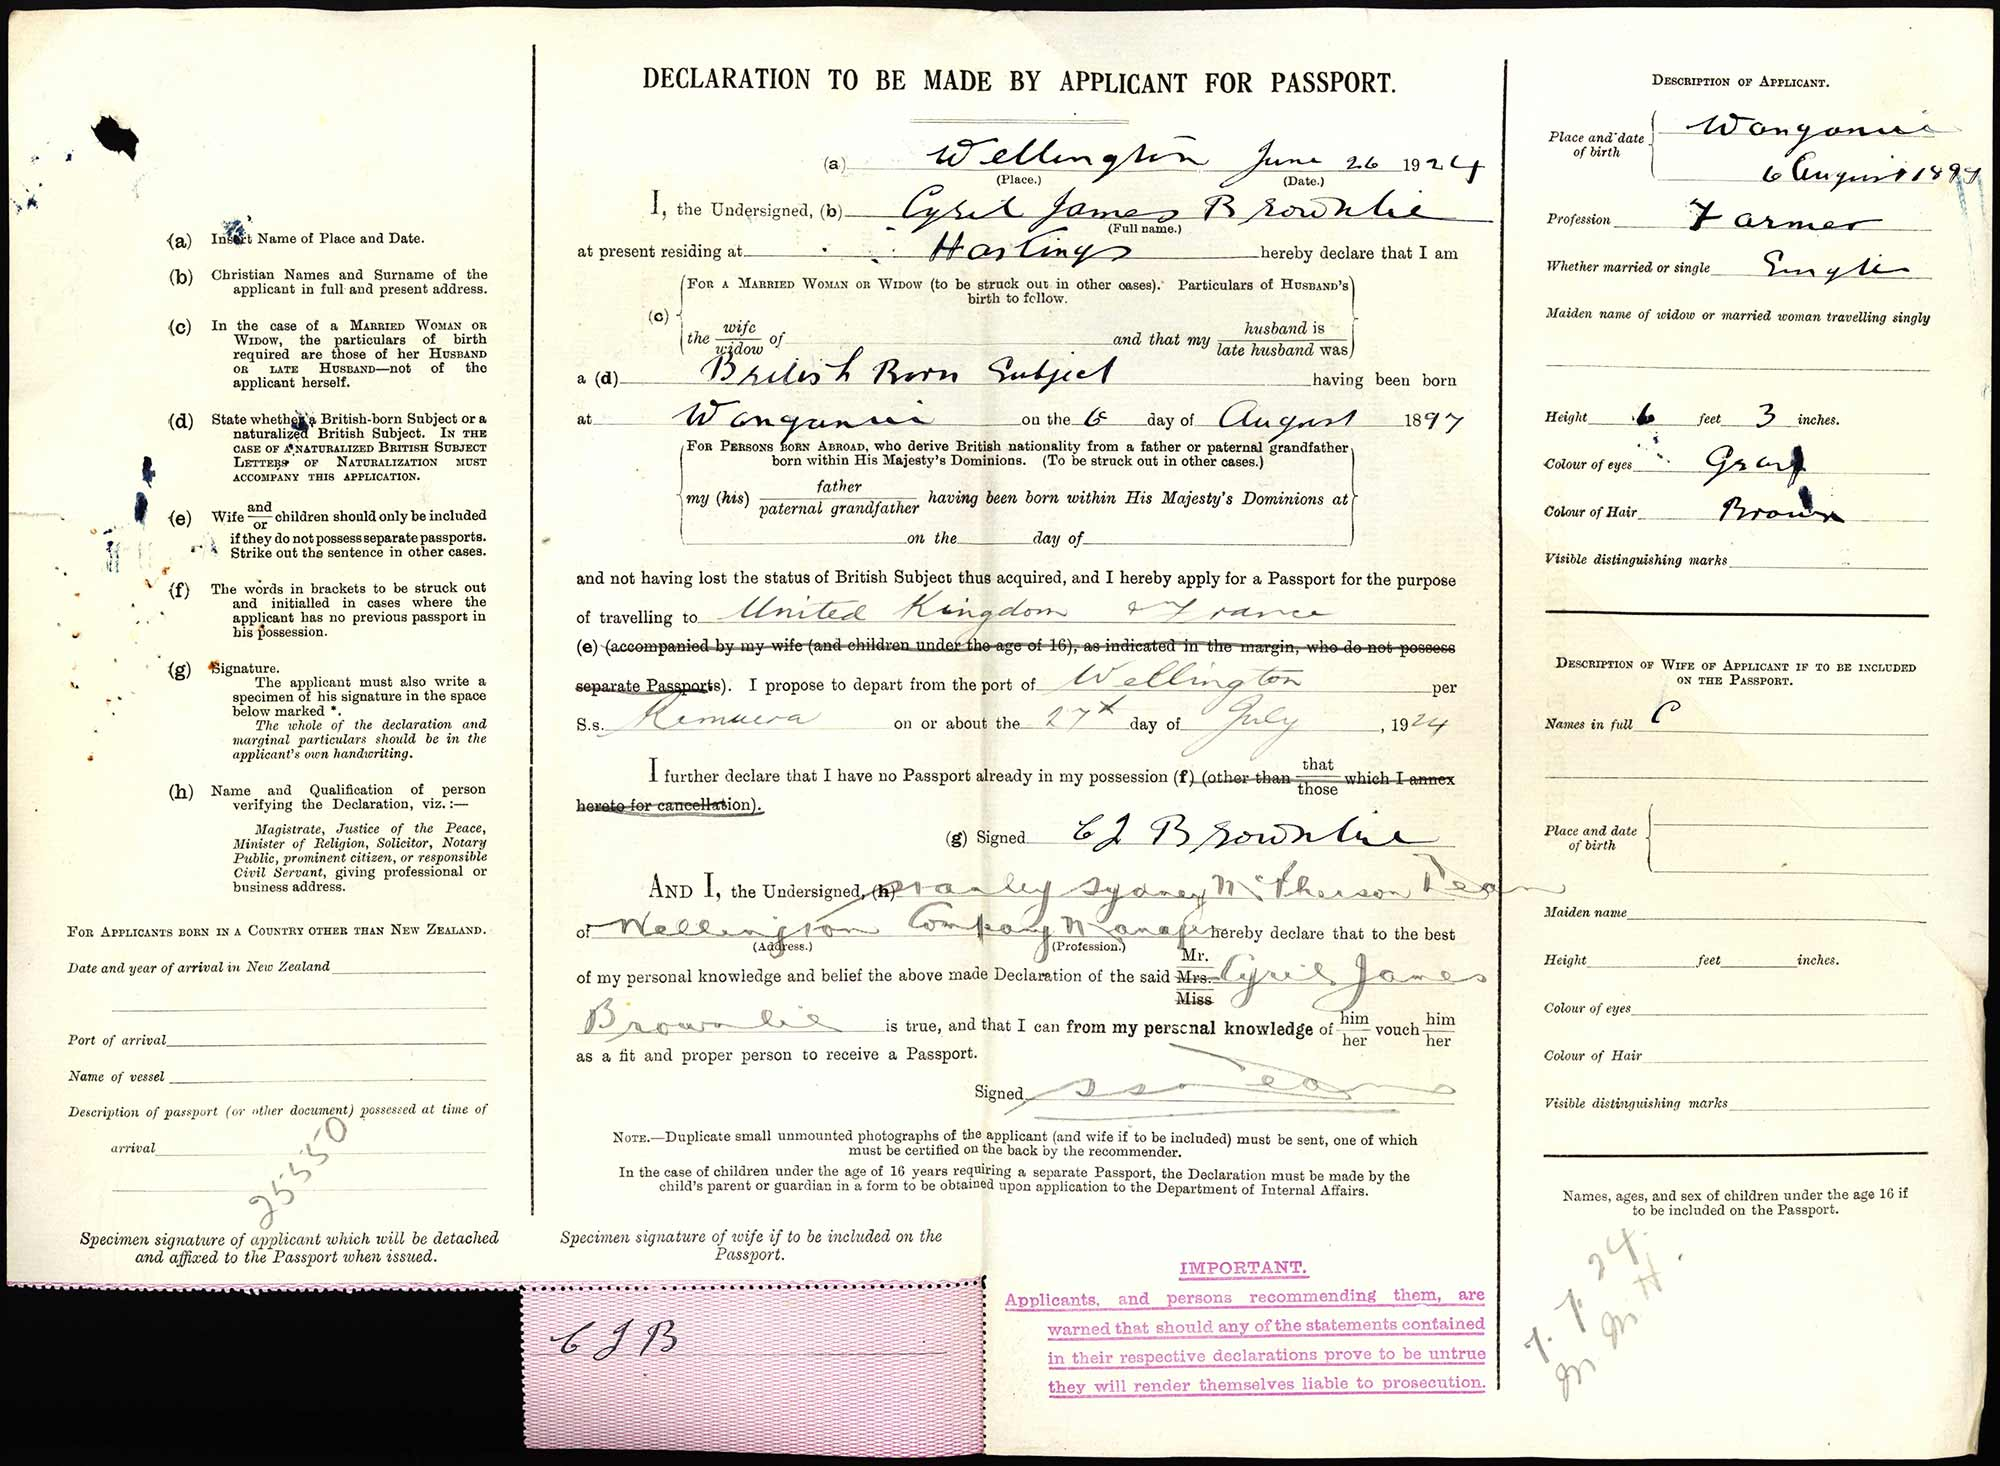 Cyril James Brownlie passport application